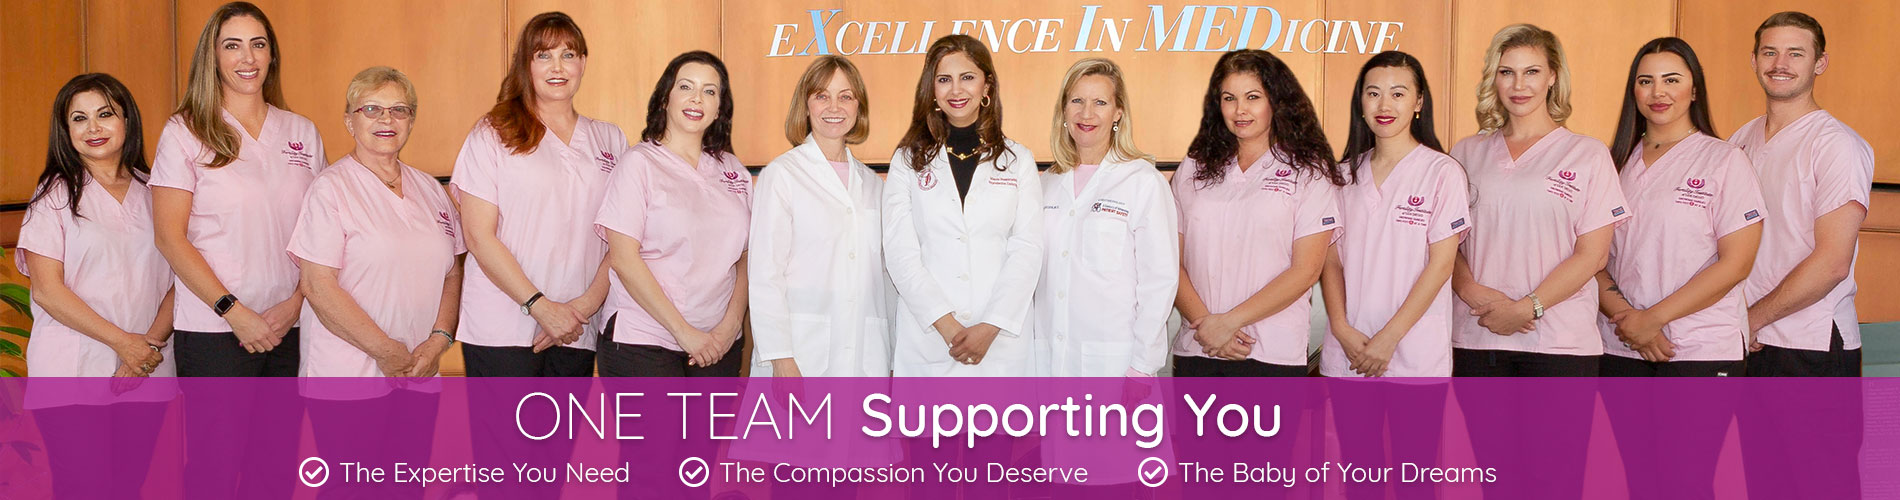 One Team Supporting You - The Expertise You Need, The Compassion You Deserve, The Baby of Your Dreams